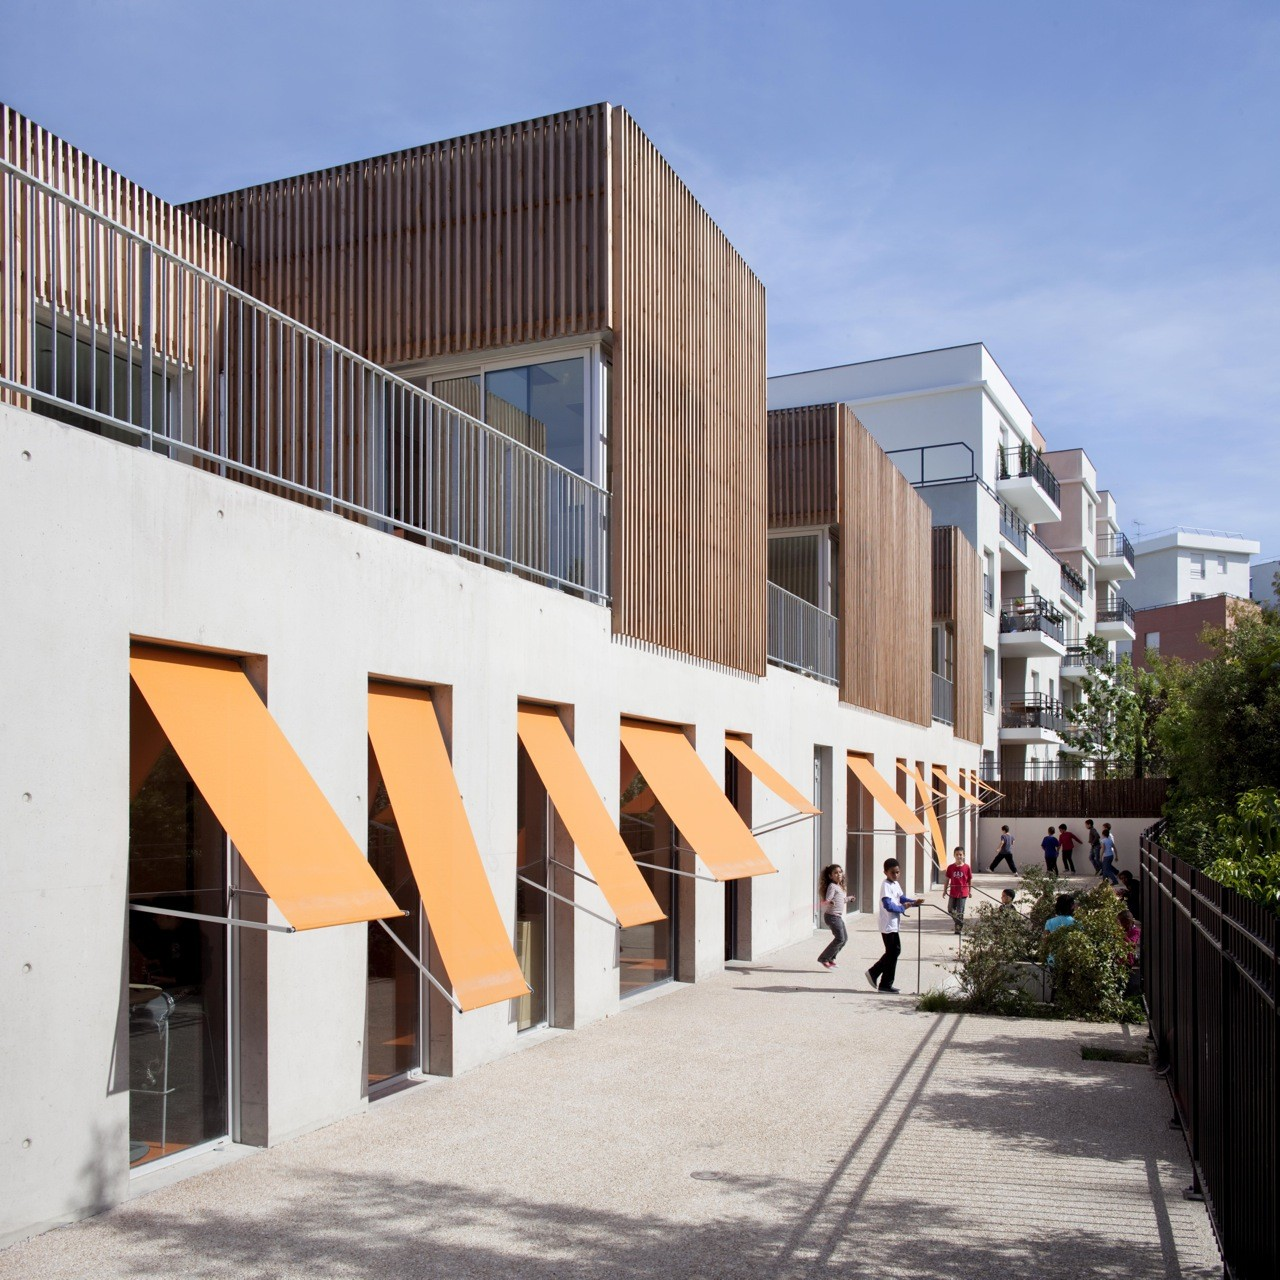 Gavroche Centre for Children / SOA Architectes, © Clément Guillaume